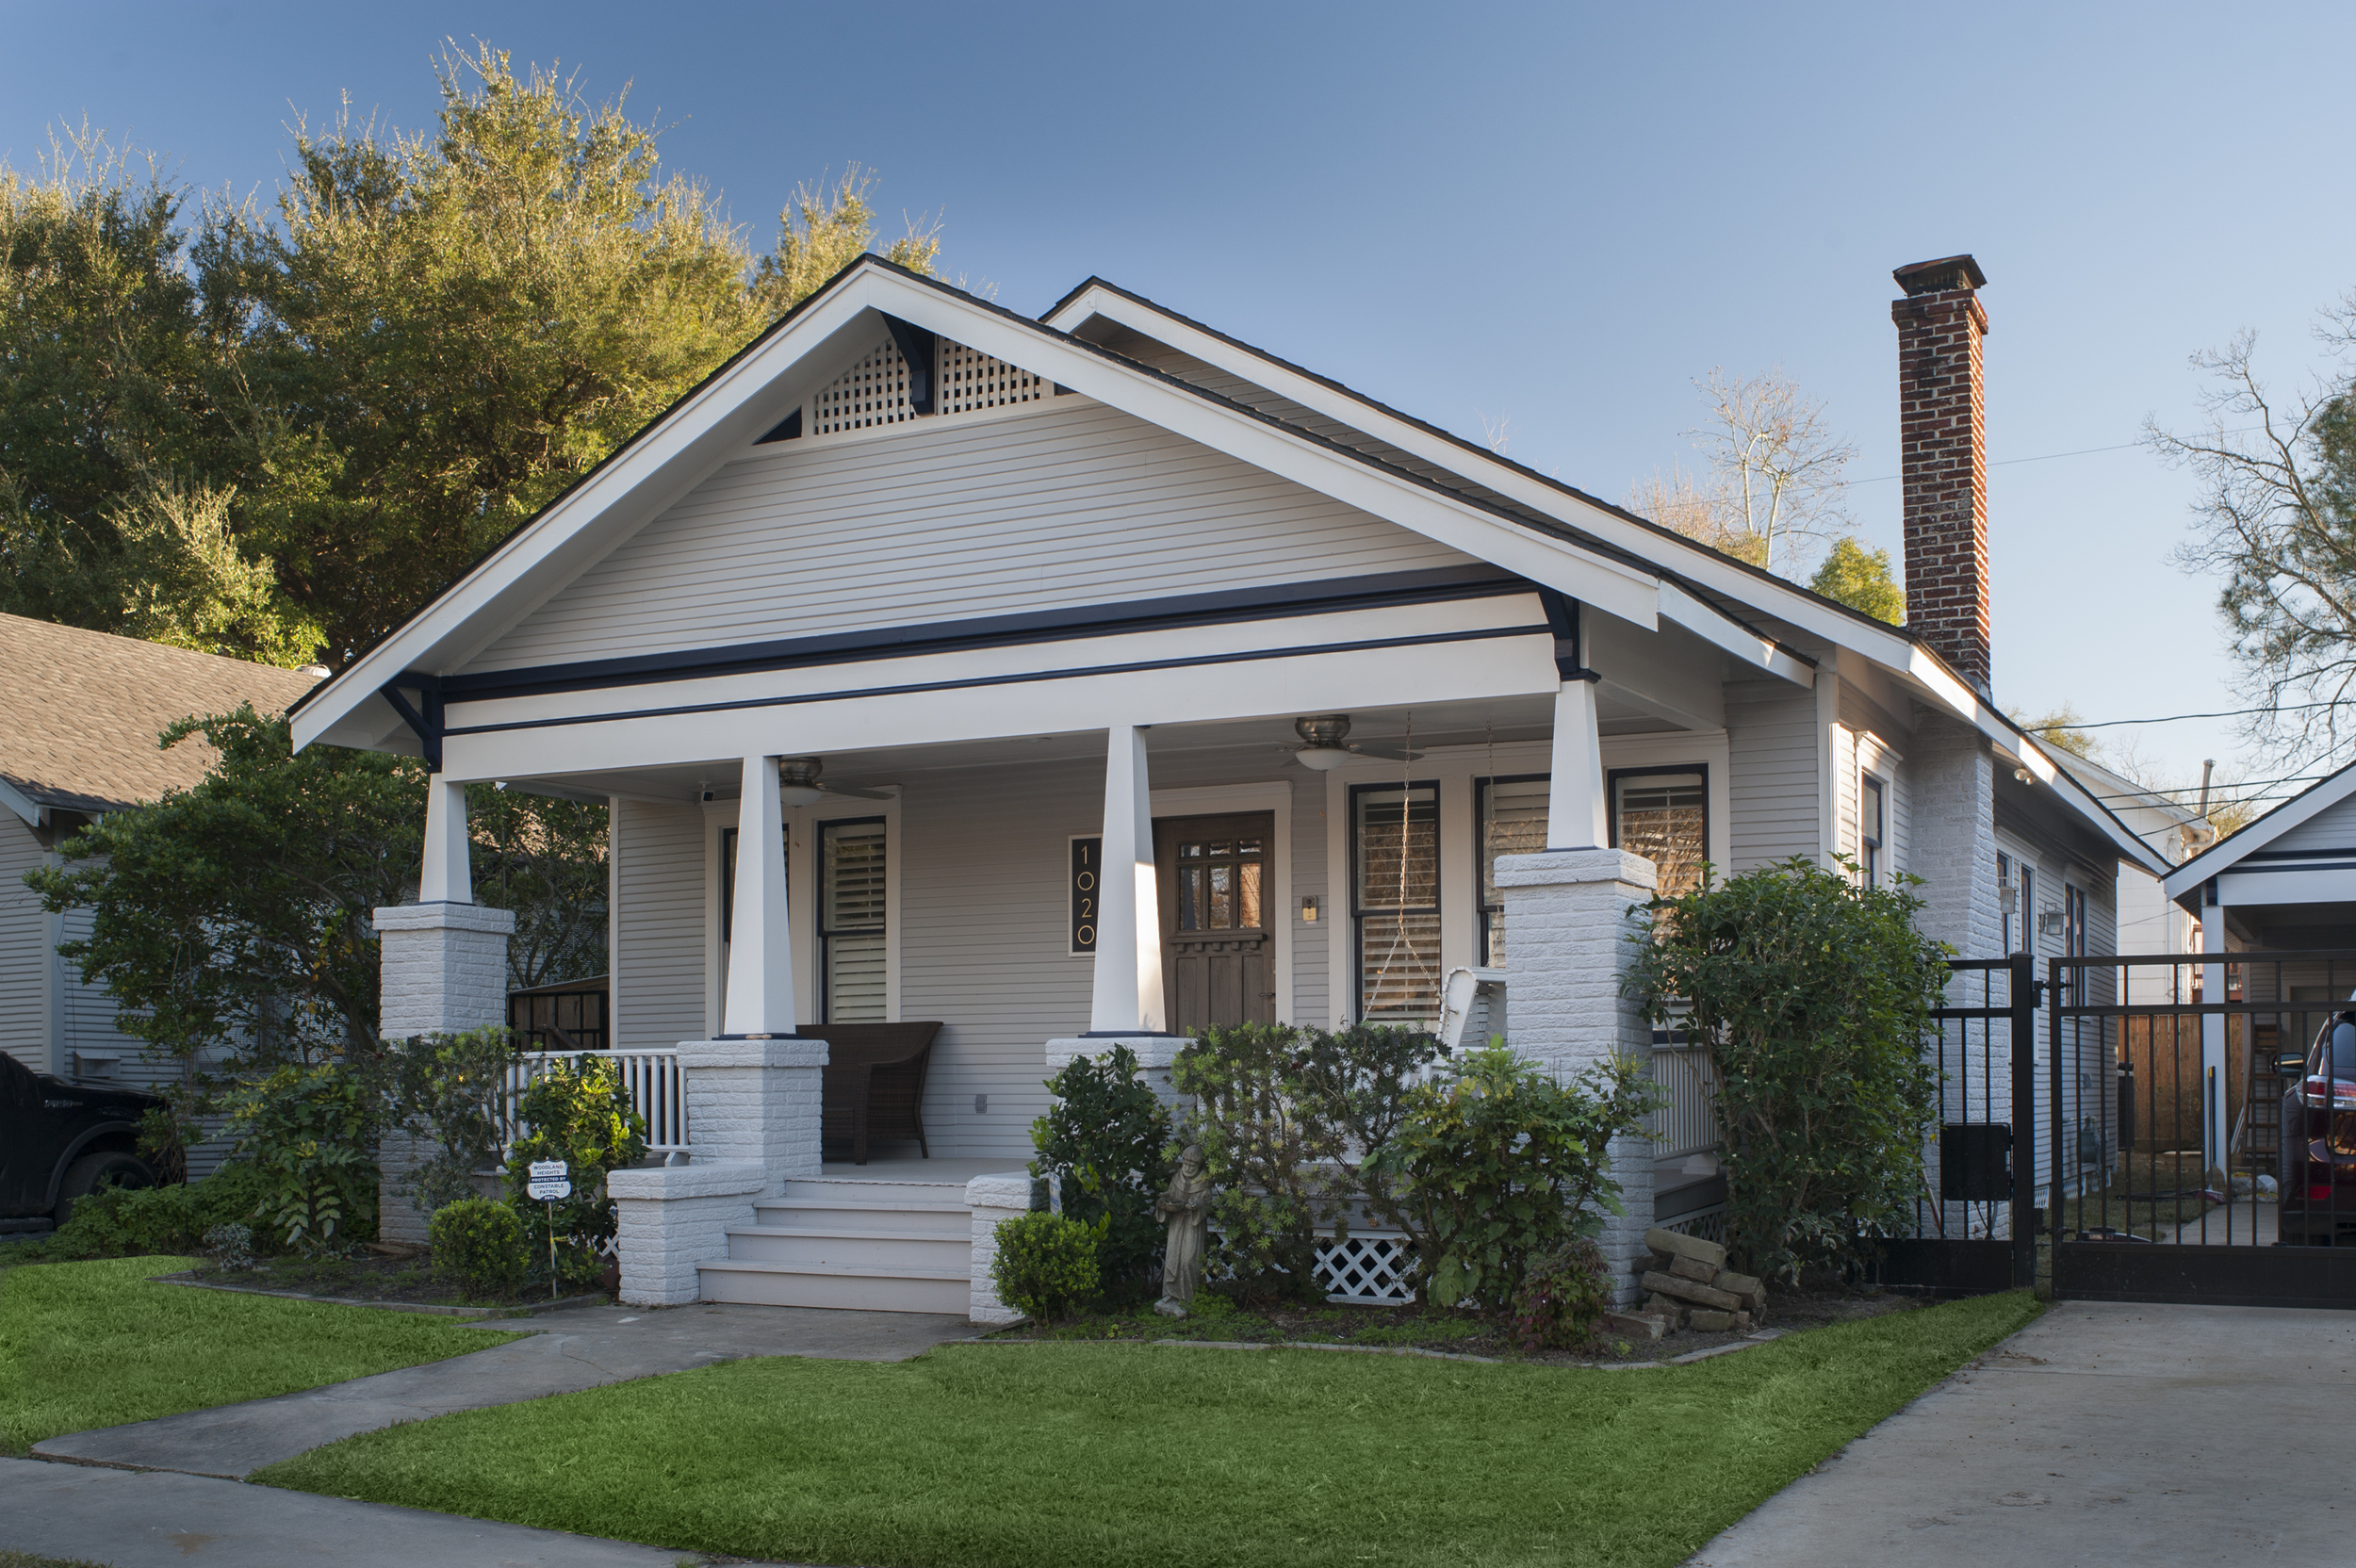 1020 Bayland: 1920 bungalow revamped and expanded in 2015, preserving original front façade, front rooms and porch.